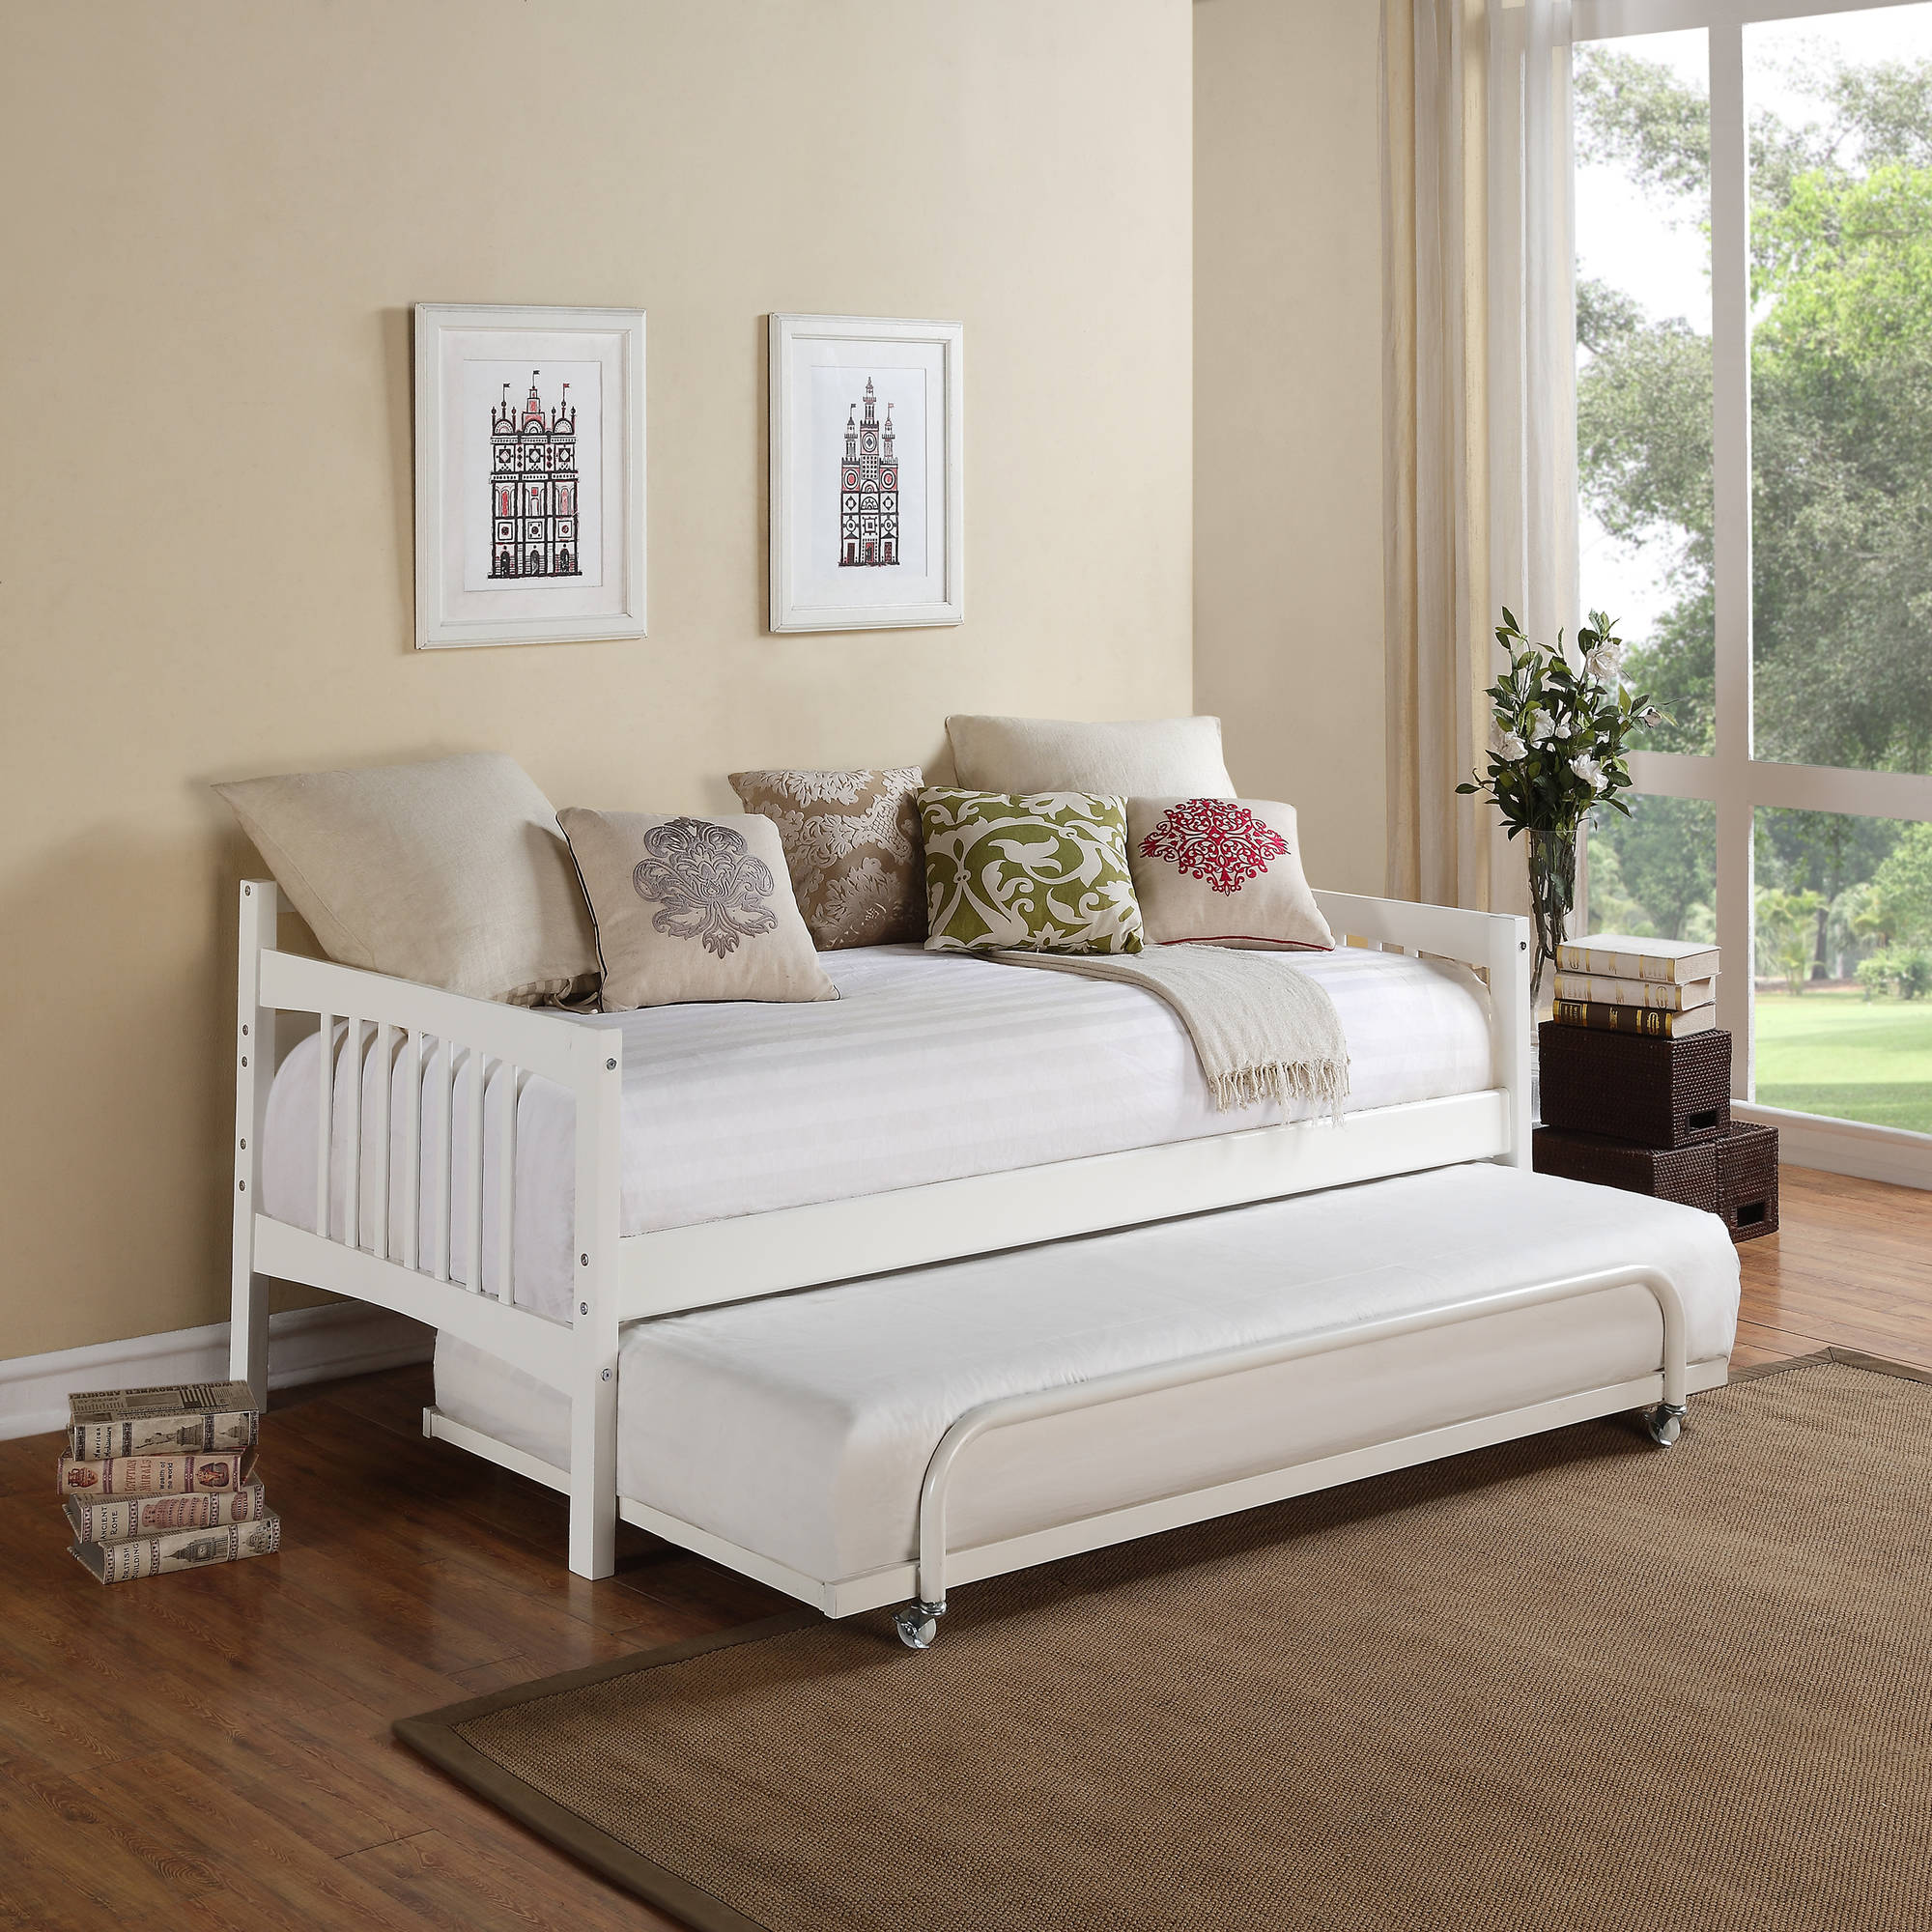 dorel home bombay metal bed multiple colors multiple sizes walmartcom - Metal Frame Twin Bed